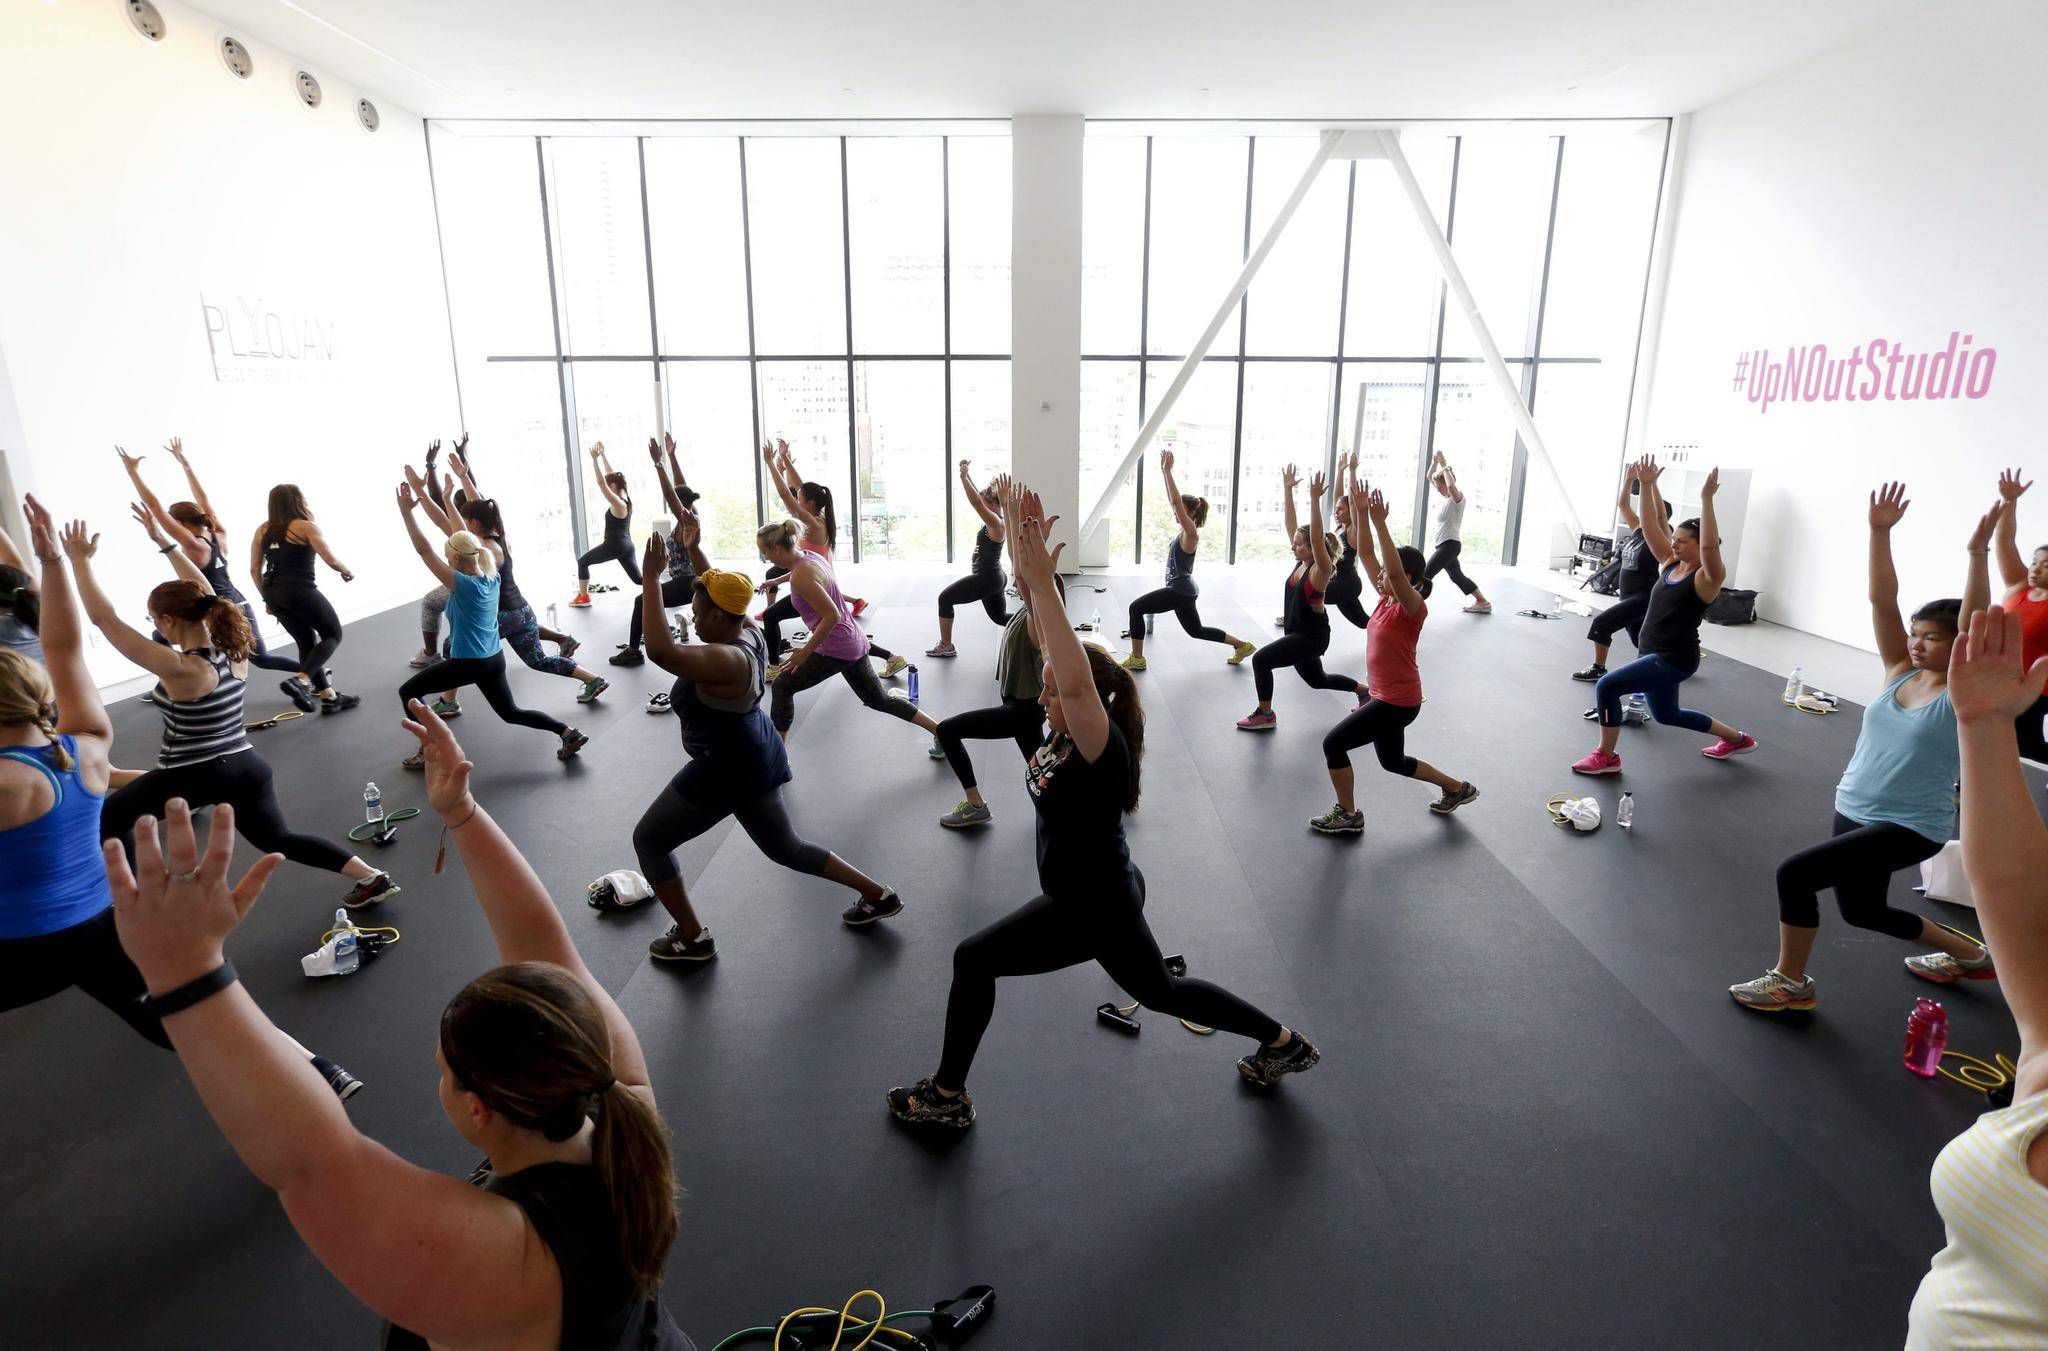 exercise as medicine' can help treat chronic diseases – if done